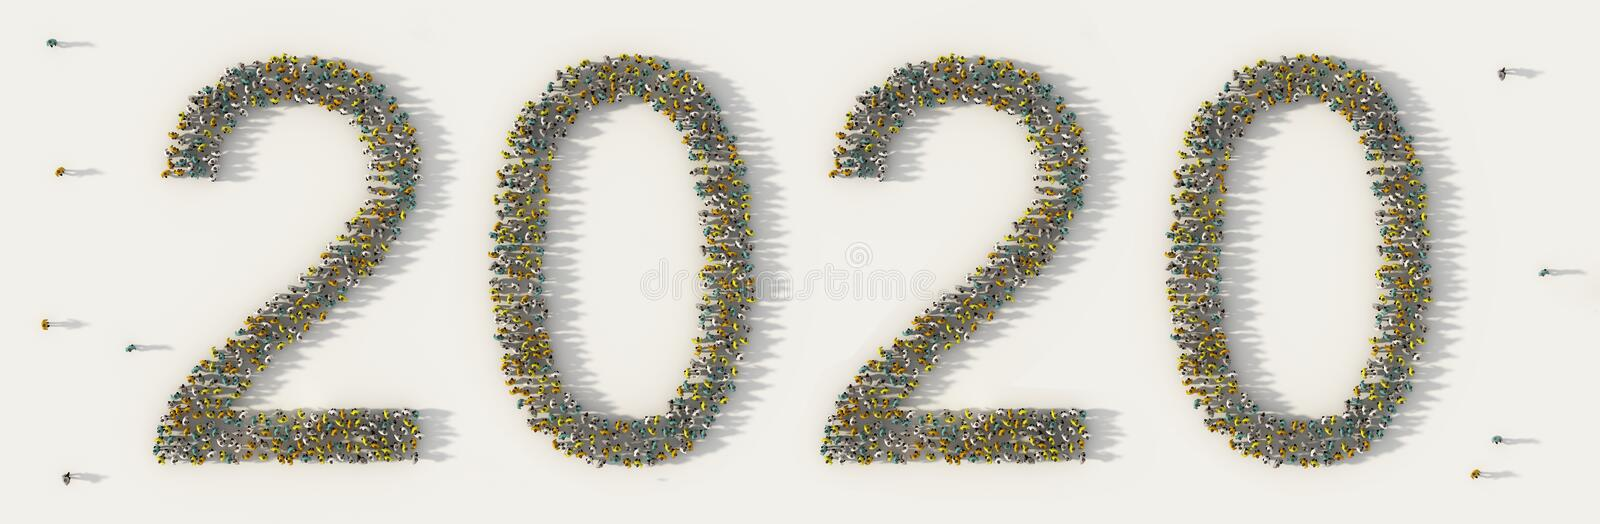 Large group of people forming 2020 text number for happy new year day on holiday in social media and community concept on white royalty free illustration